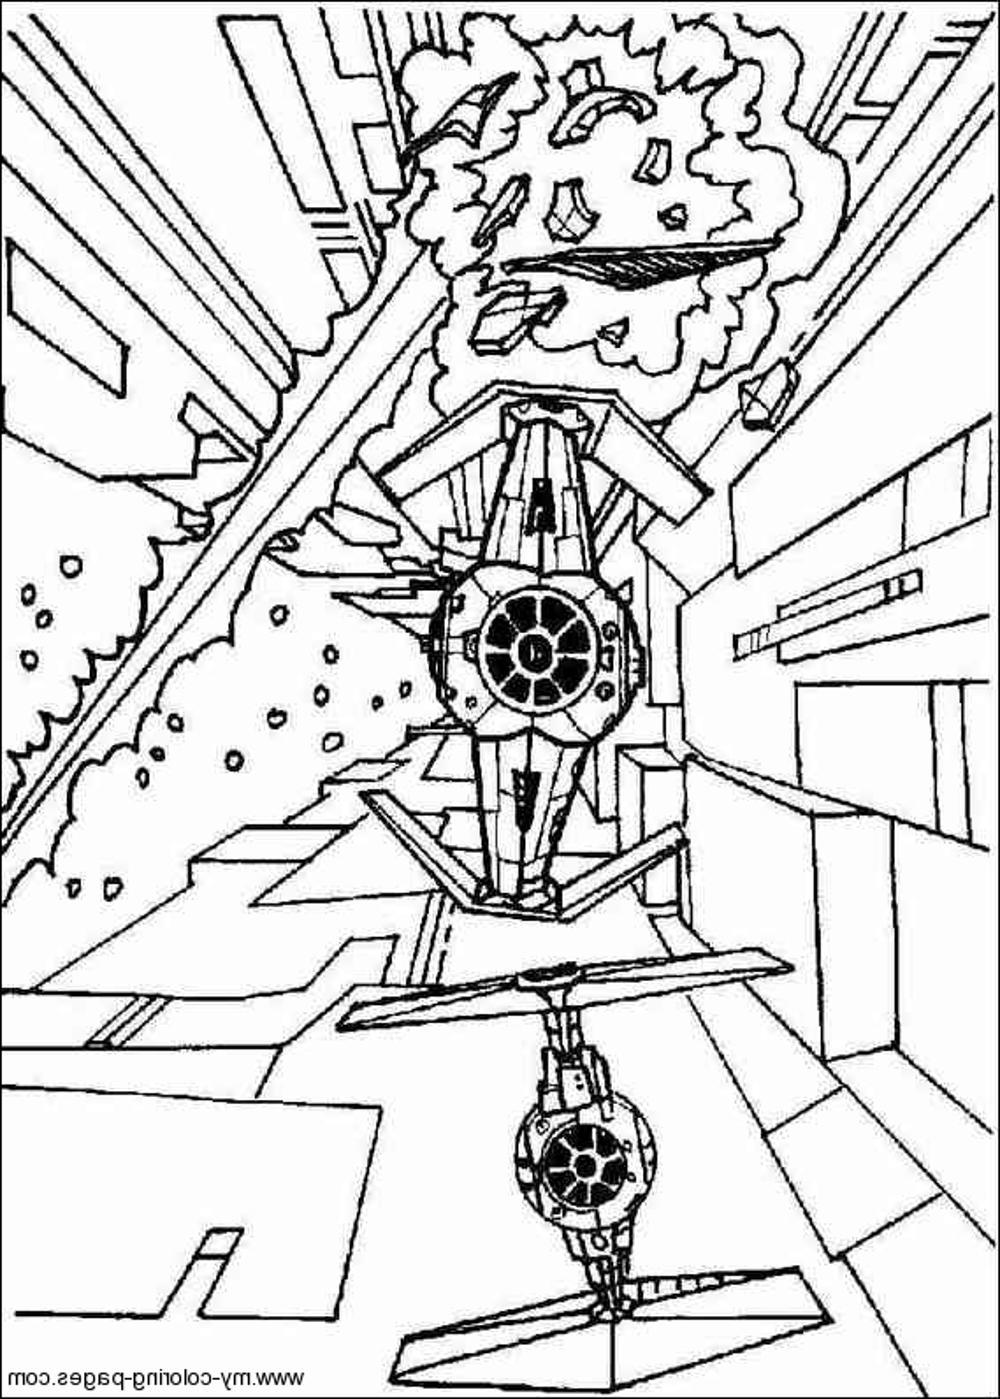 lego star wars printable coloring pages star wars free printable coloring pages for adults kids coloring lego star printable pages wars